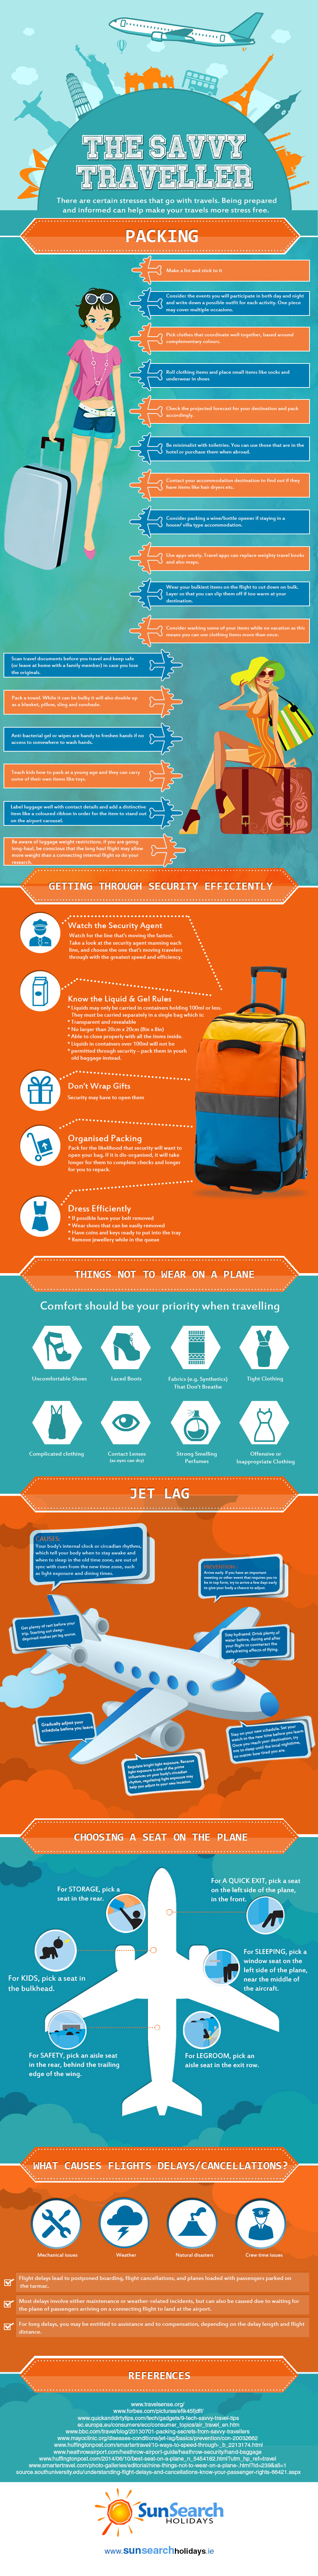 The Savvy Traveler [Infographic]